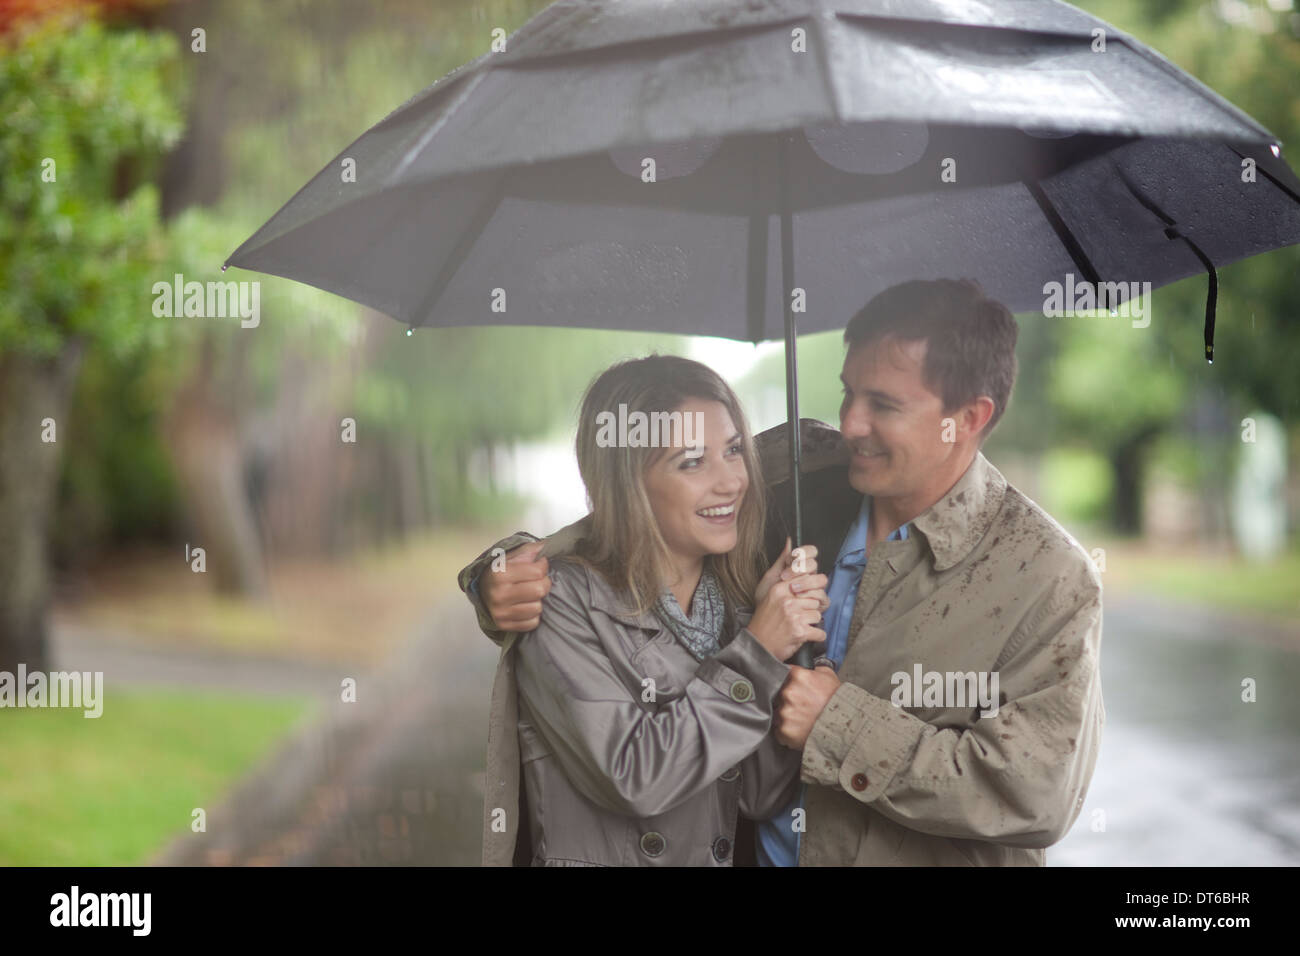 Young woman and mature man walking in rainy park - Stock Image